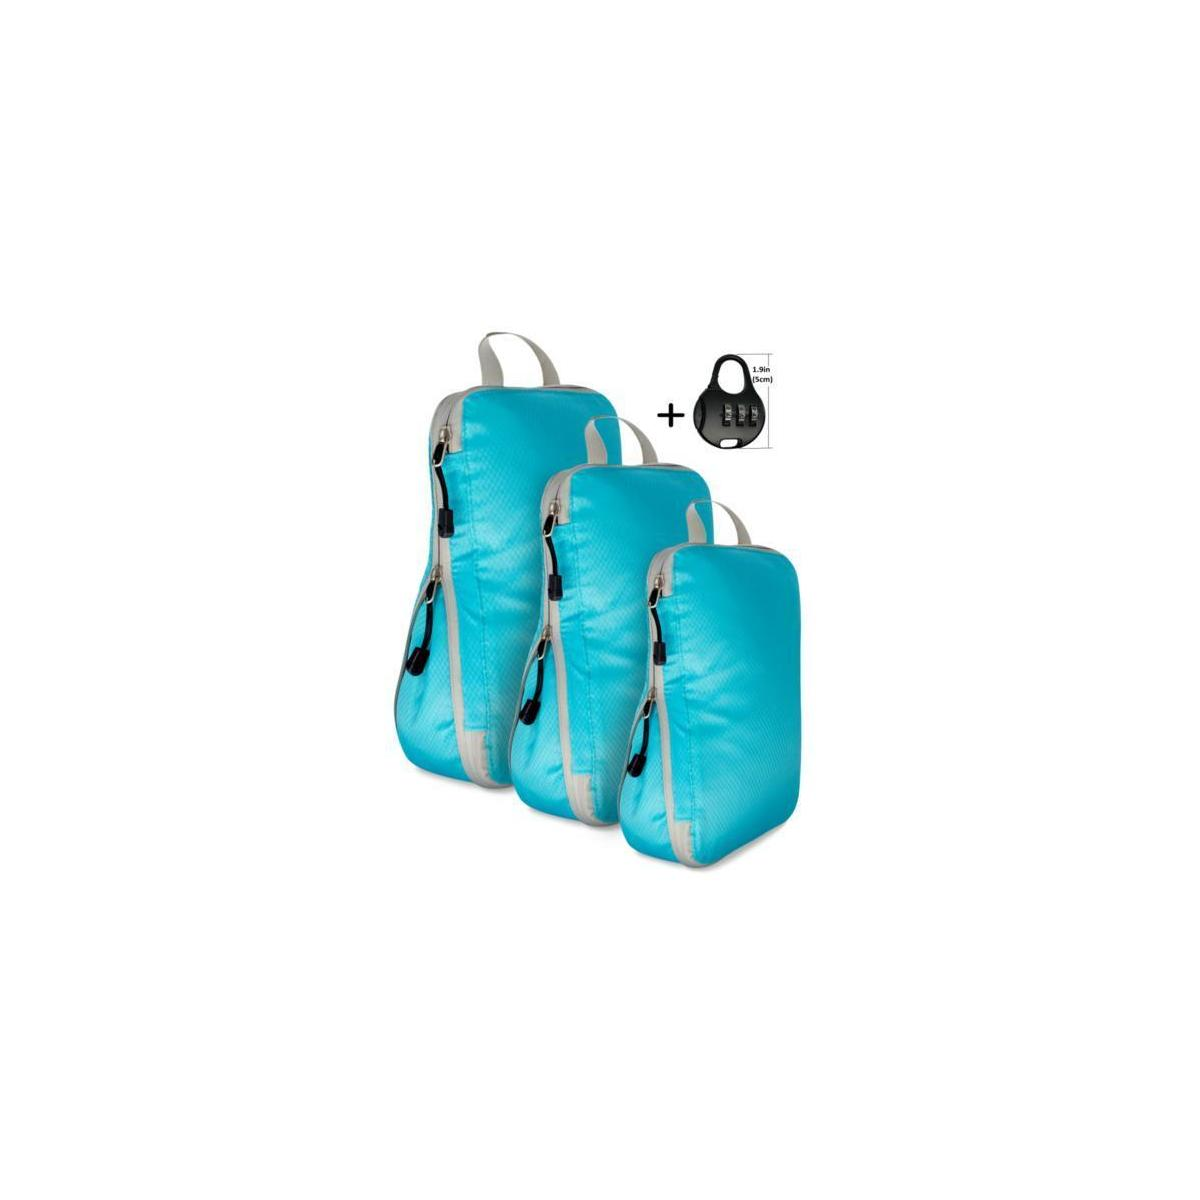 EVEK Compression Organizers Set Packing Cubes for Carry on Travel Bag Luggage Cube (Choose color)